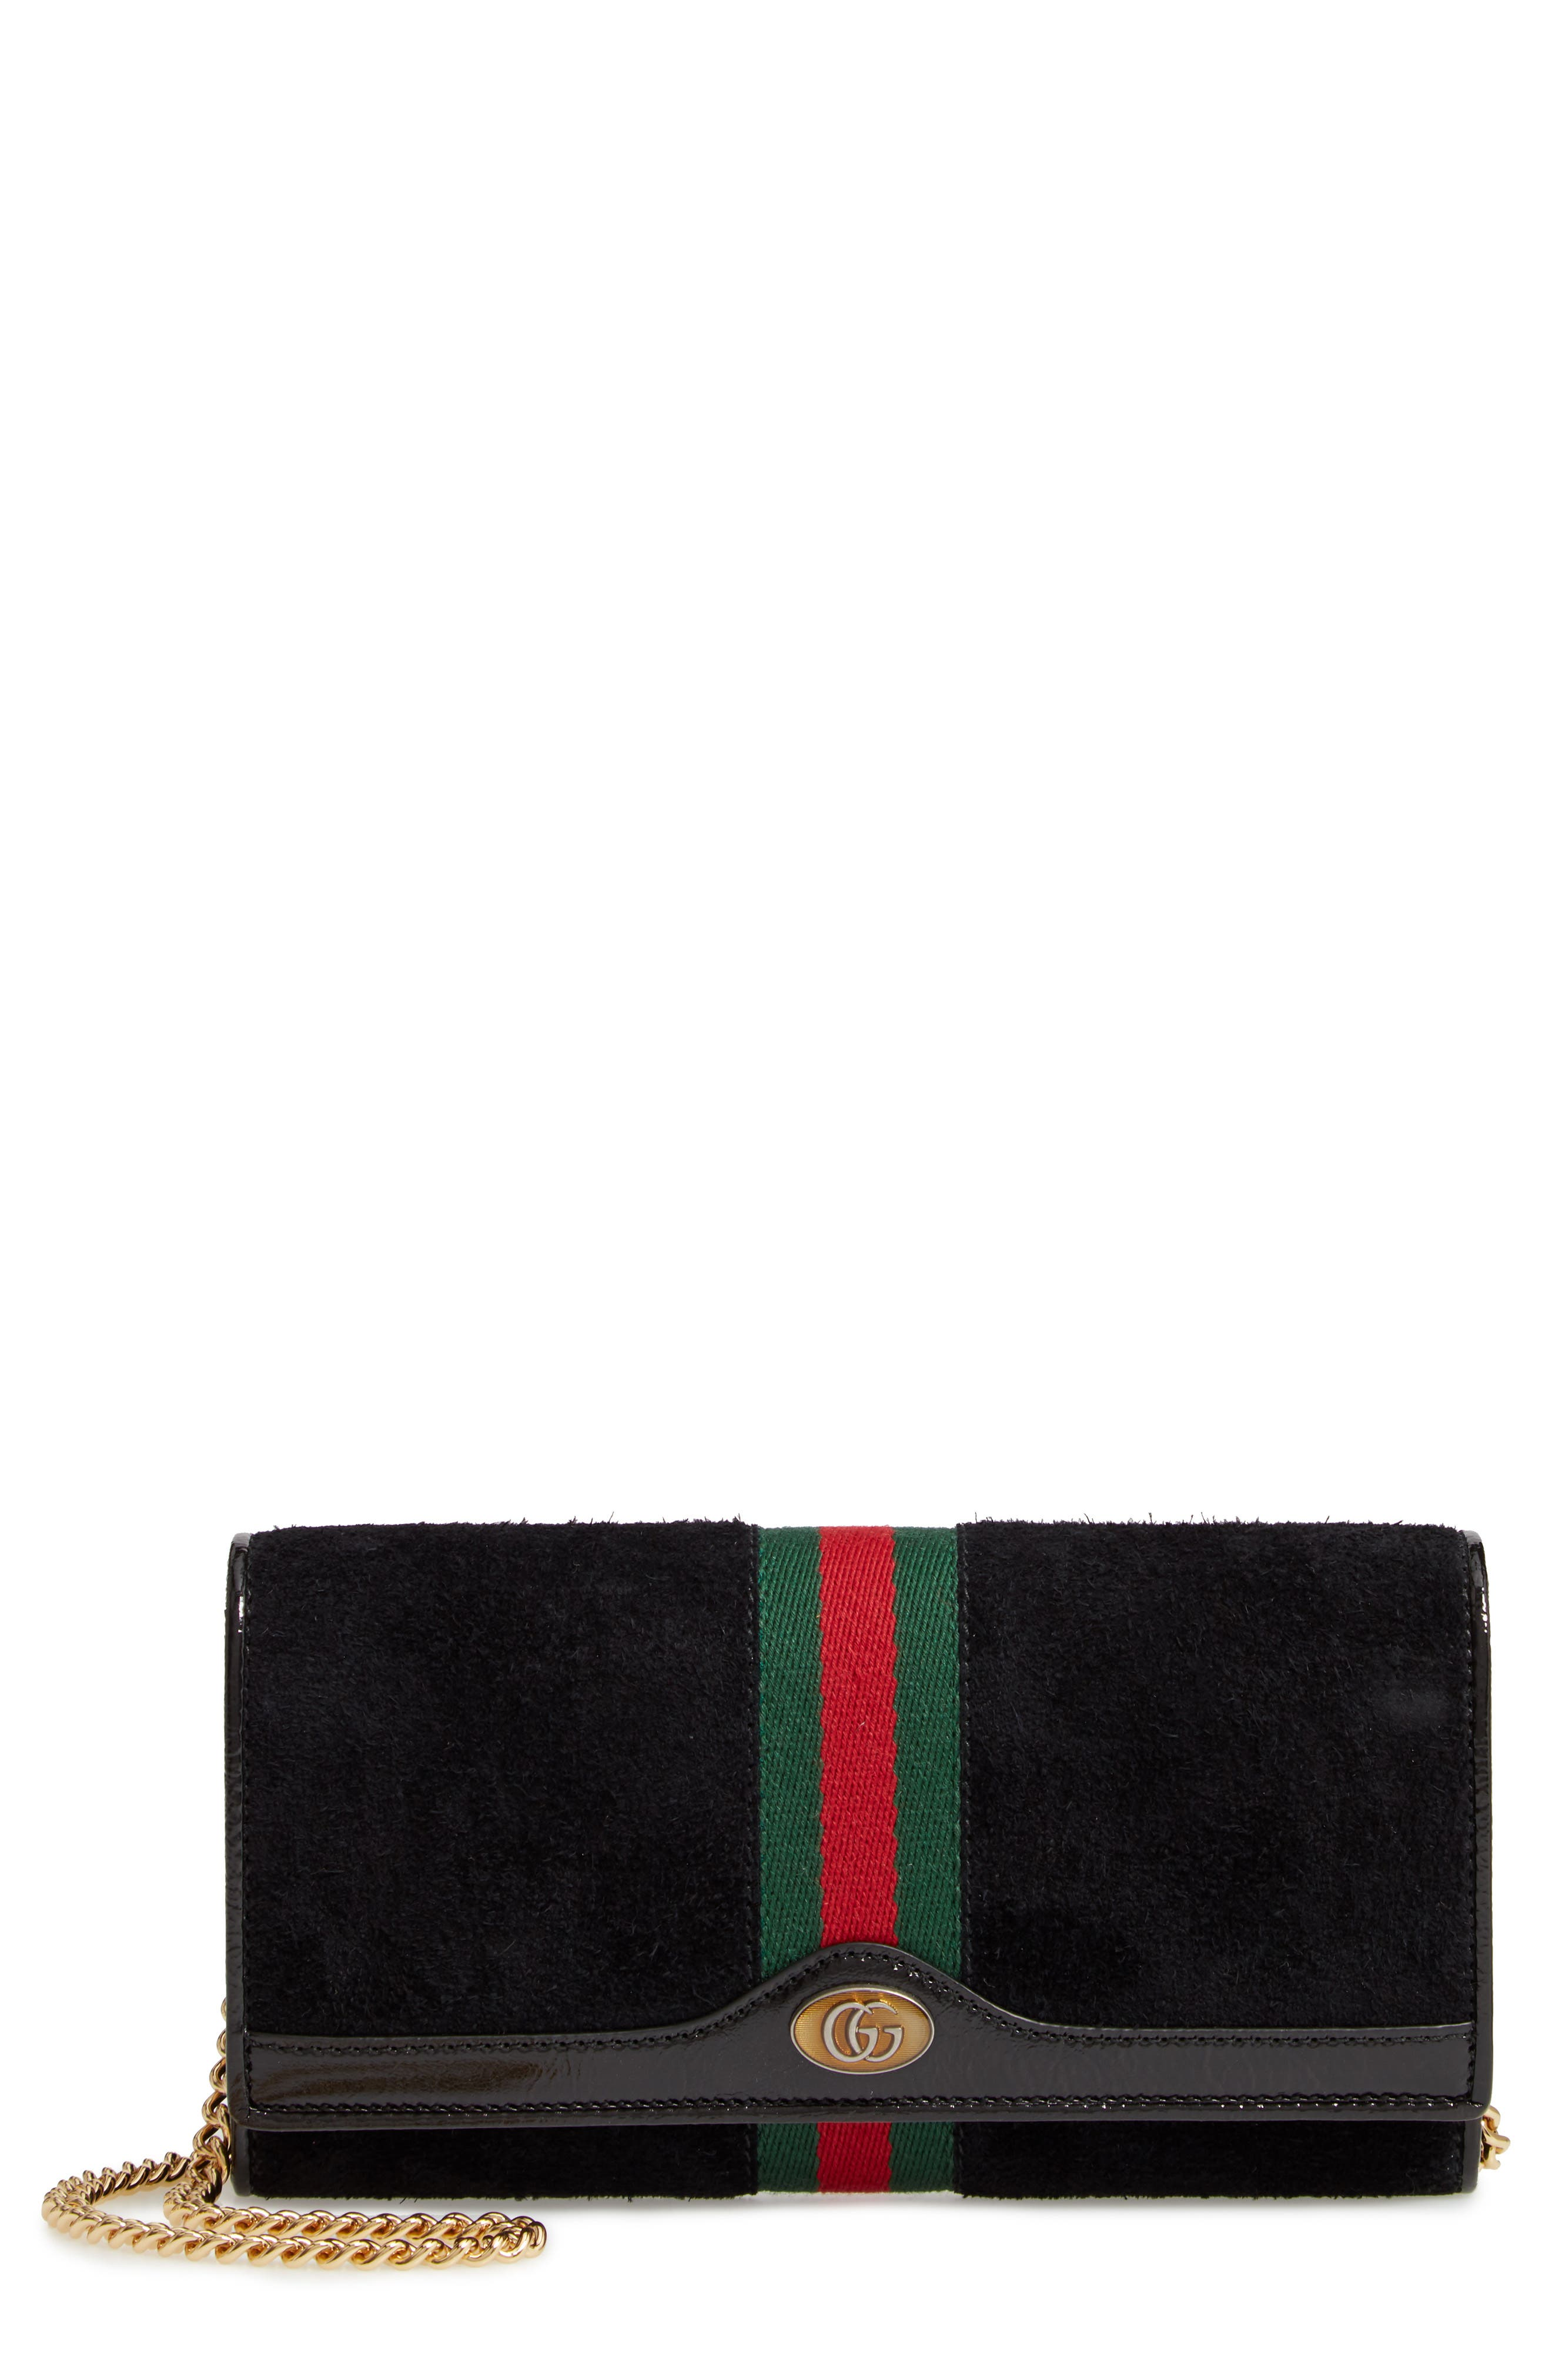 GUCCI Ophidia Suede Continental Wallet, Main, color, NERO/ VERT/ RED